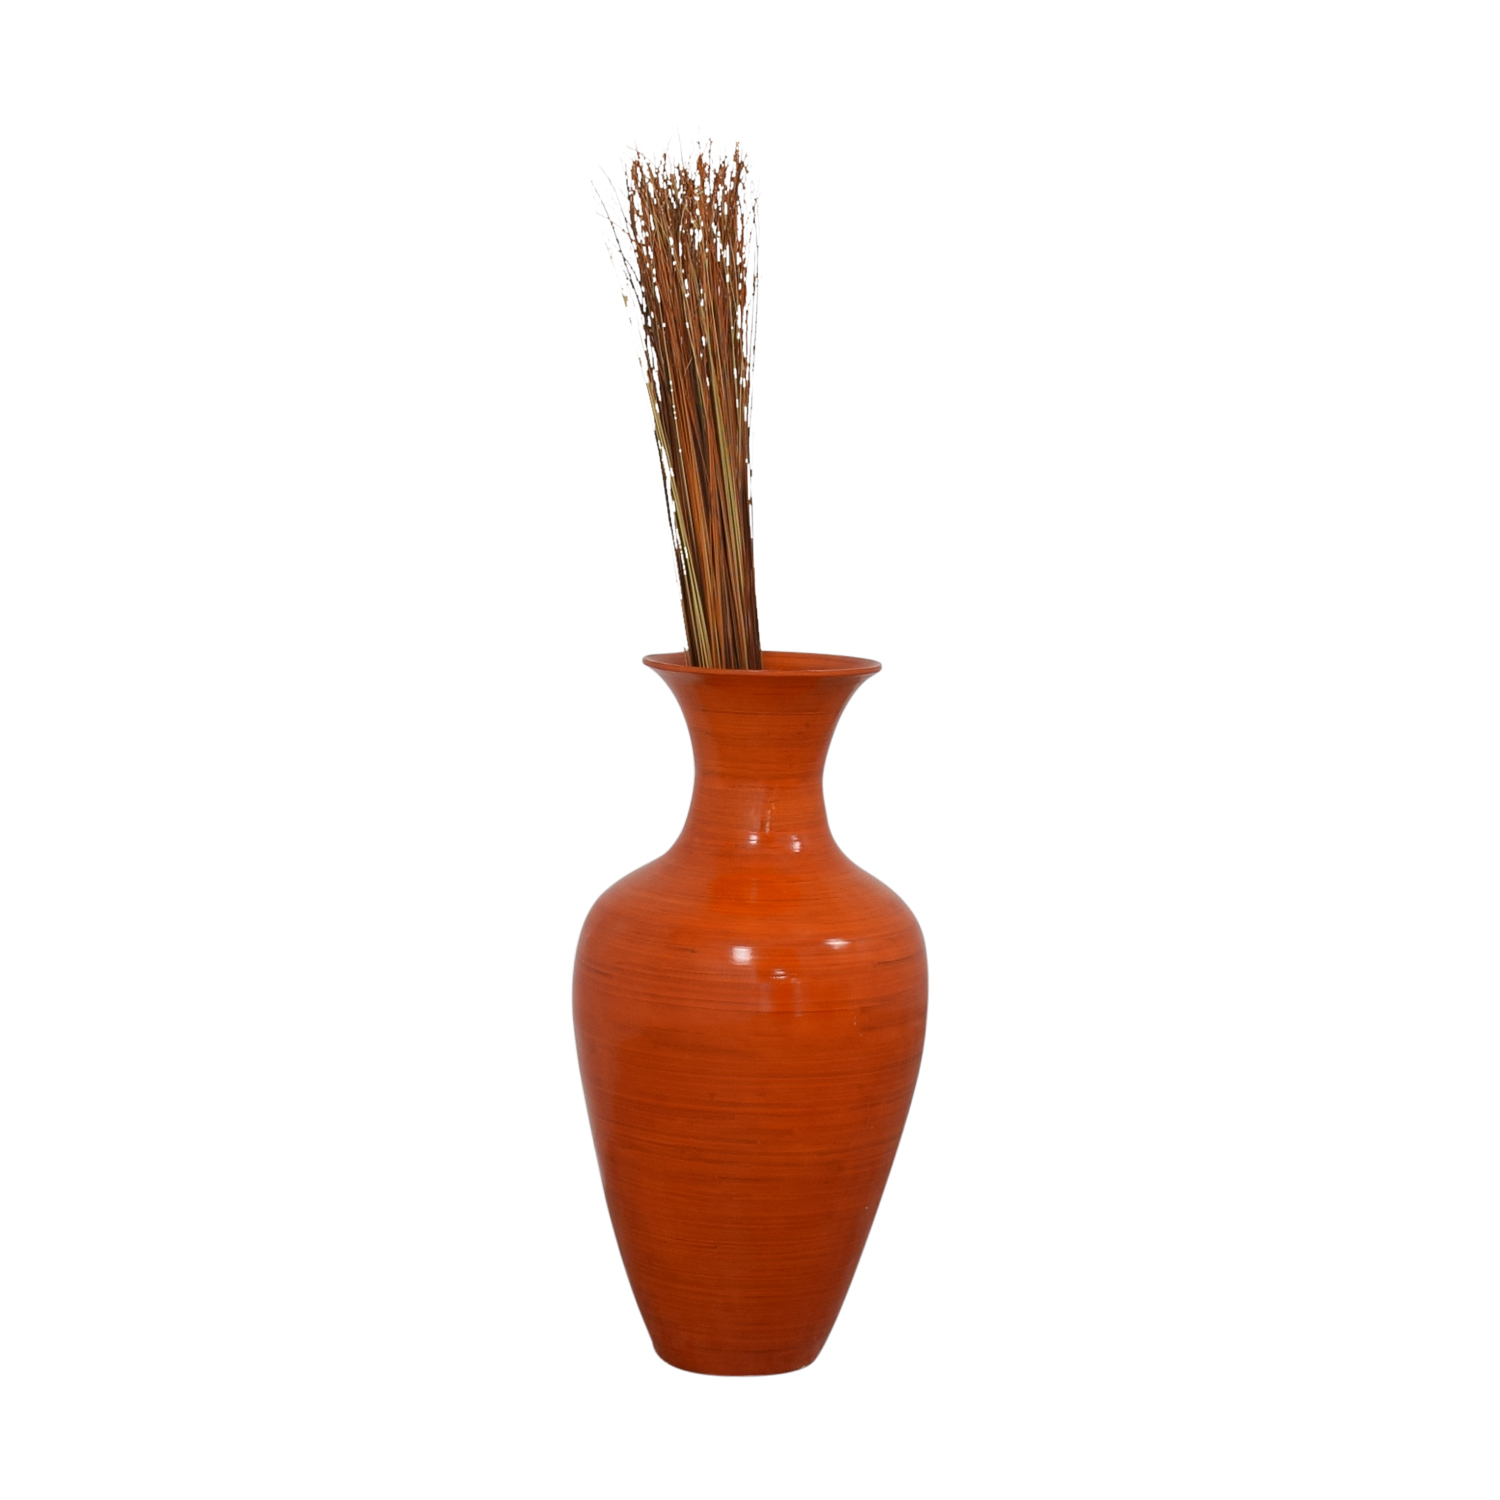 Home Goods Home Goods Orange Tall Ceramic Vase coupon